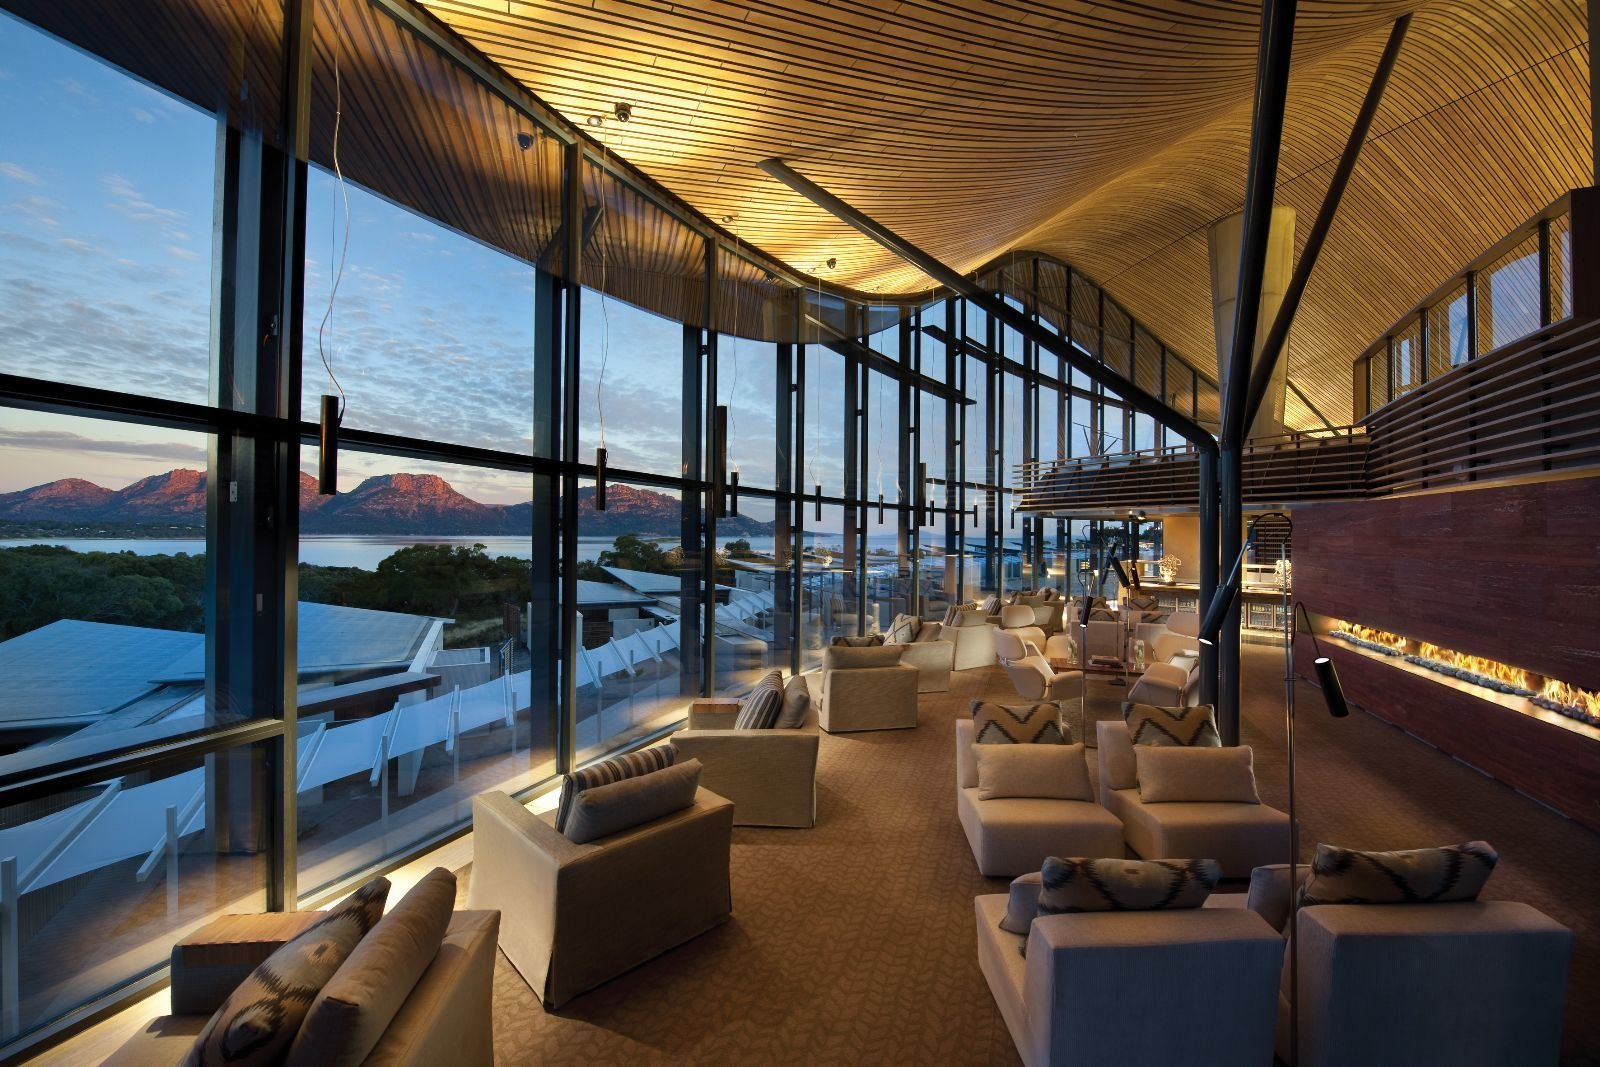 This Modern Tasmanian Resort  Reflects the Natural Forms Surrounding It - Photo 9 of 10